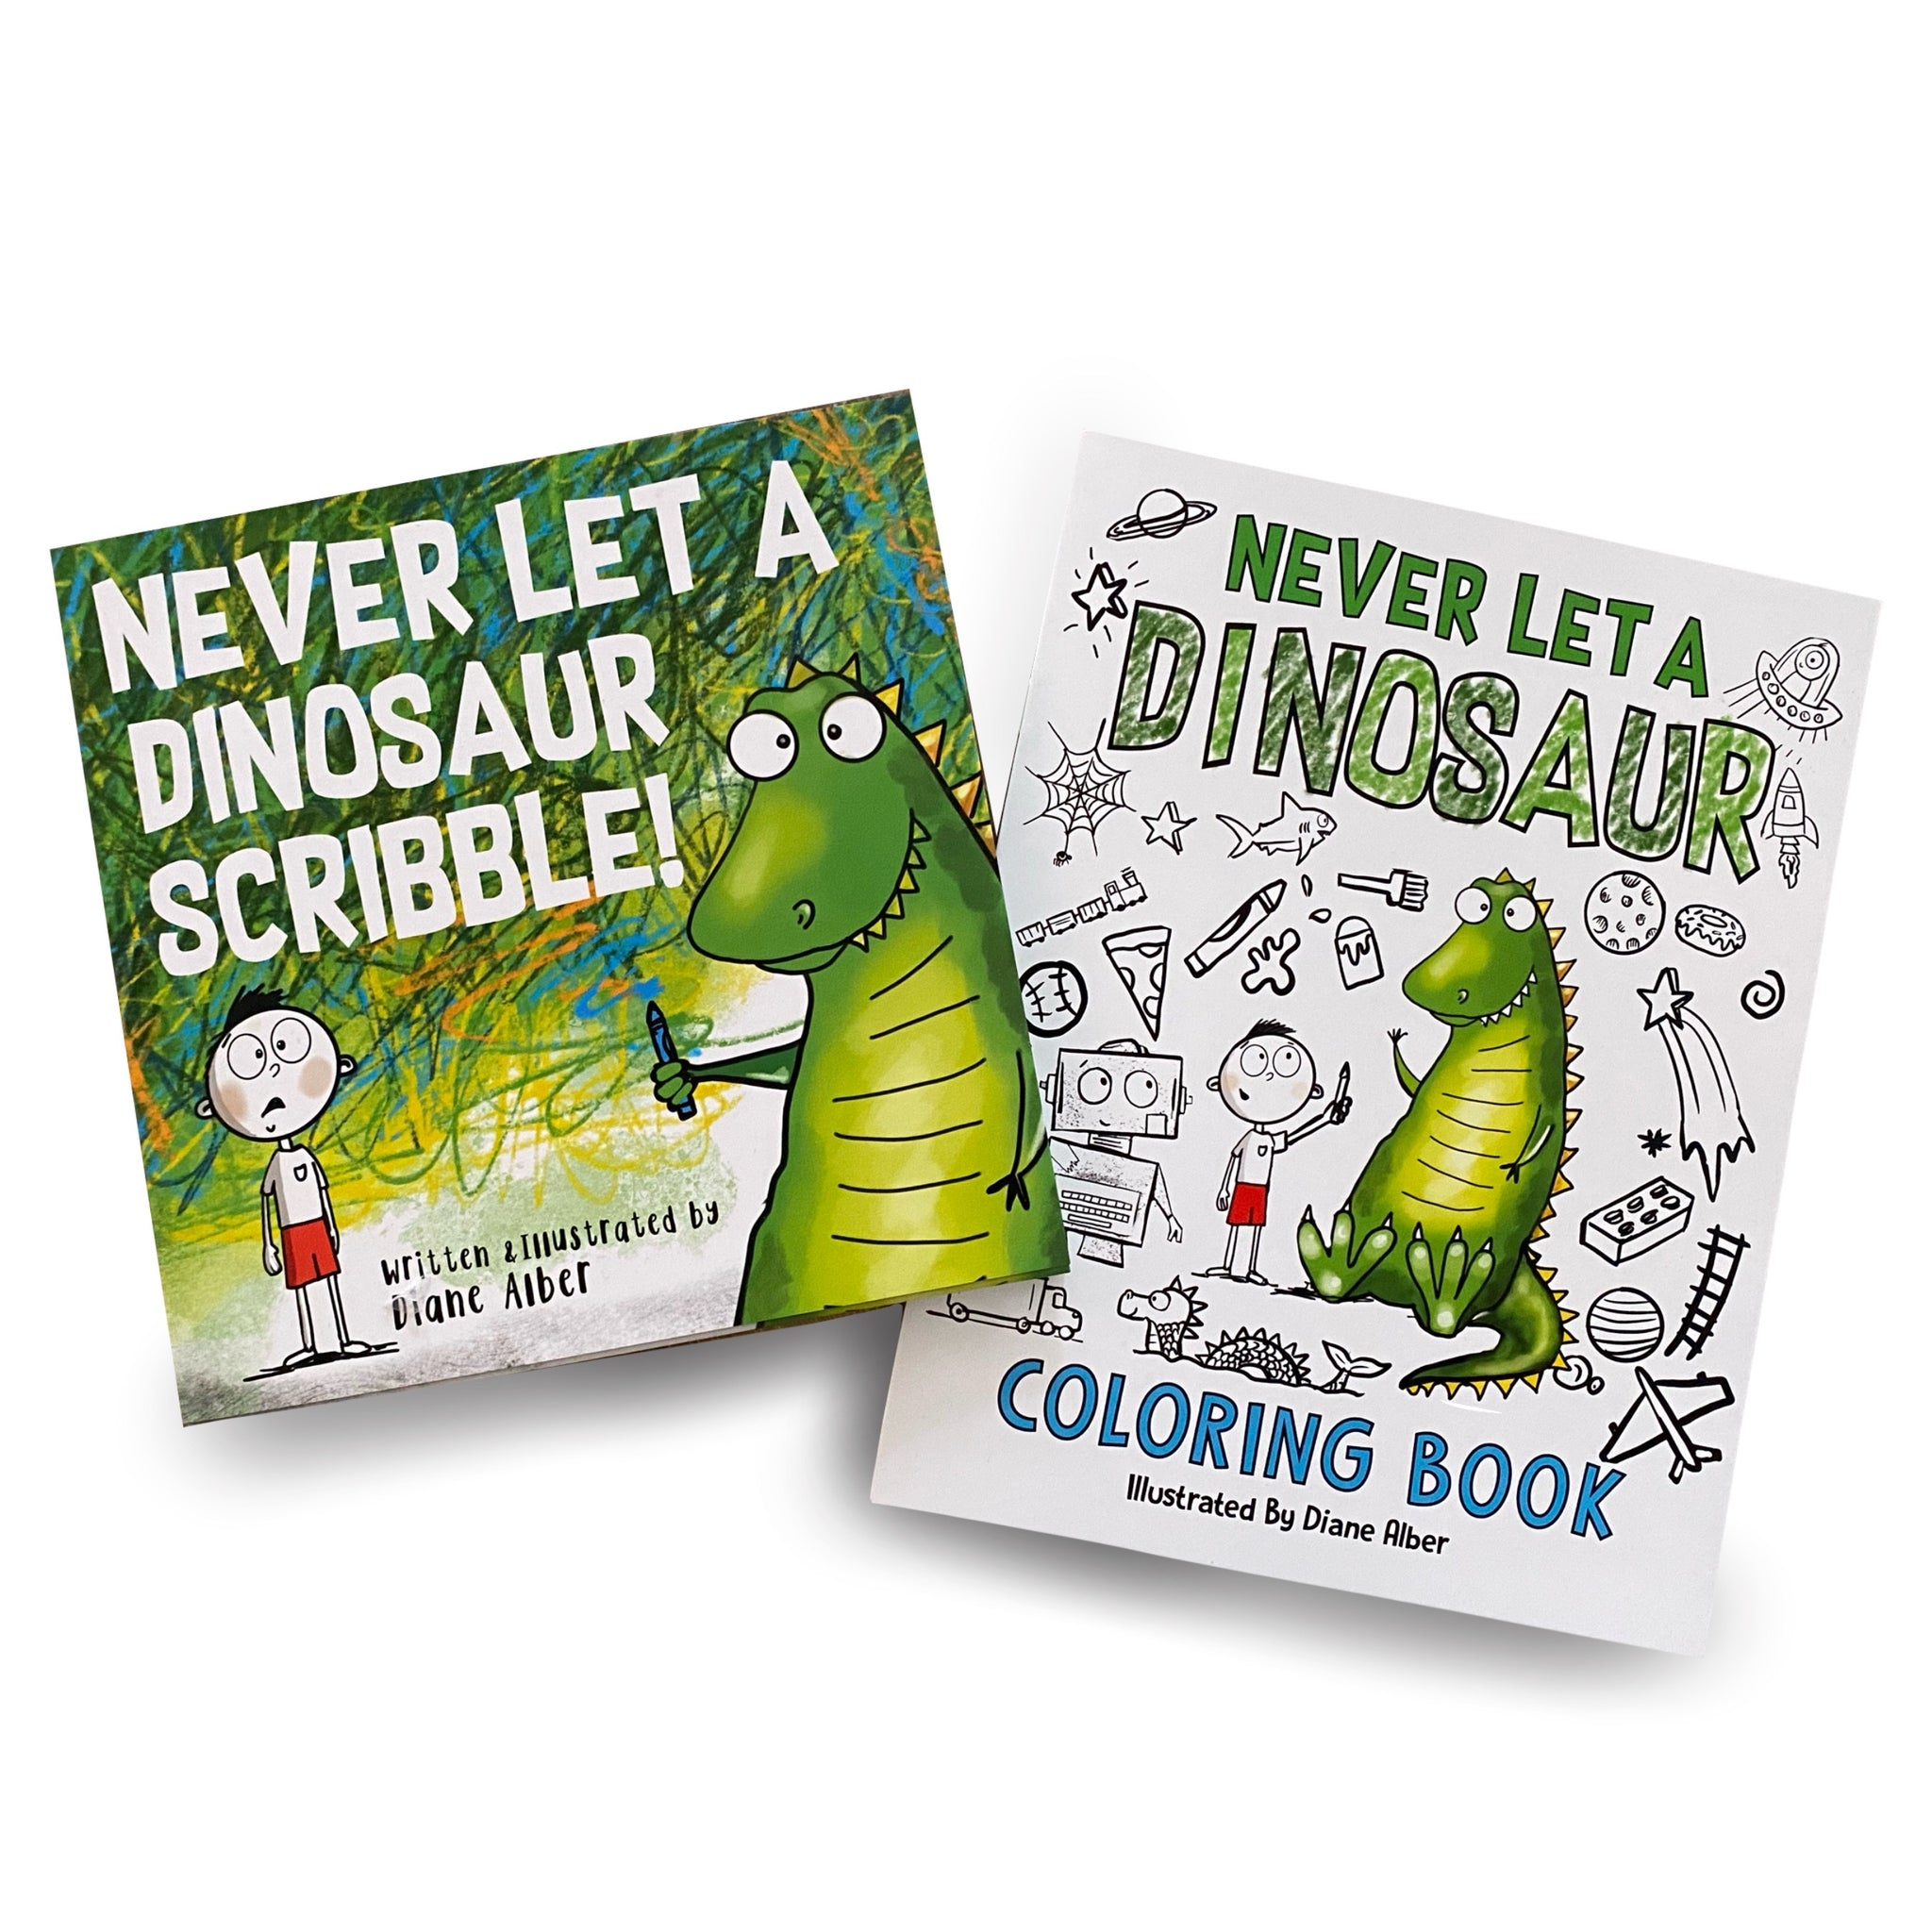 Never Let A Dinosaur Hardcover Book and Coloring Book bundle